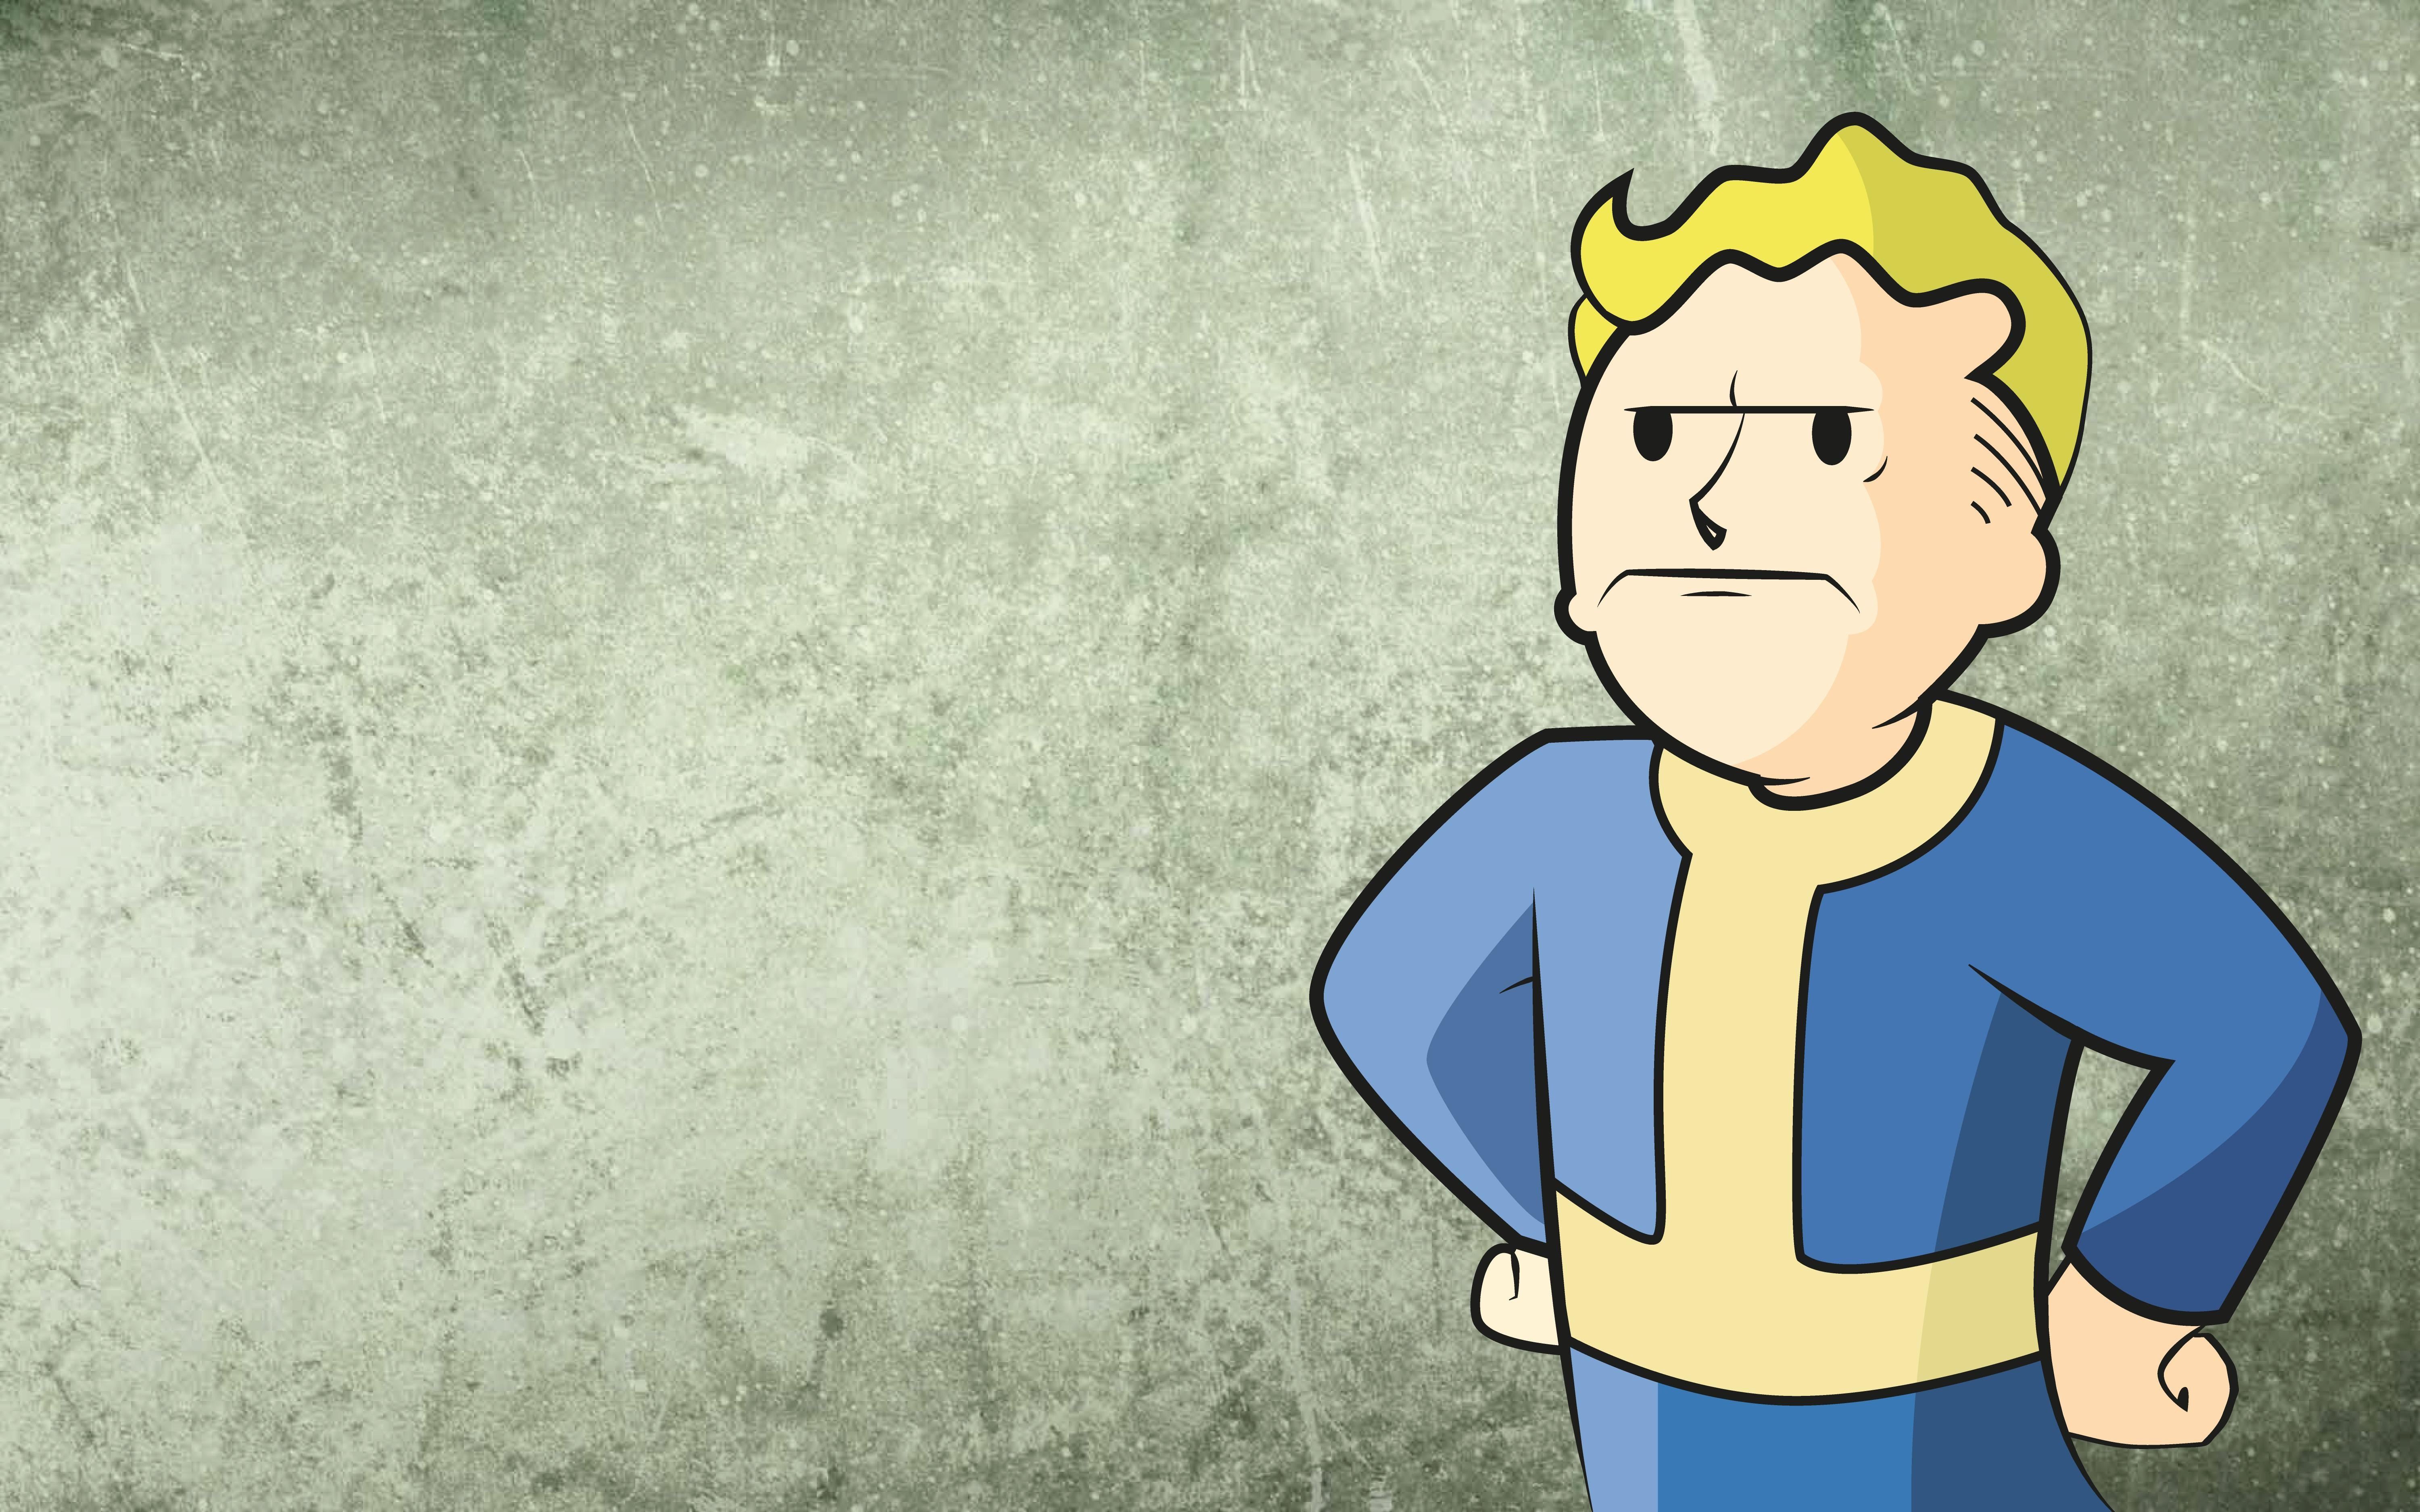 Download the Angry Vault Boy Wallpaper Angry Vault Boy iPhone